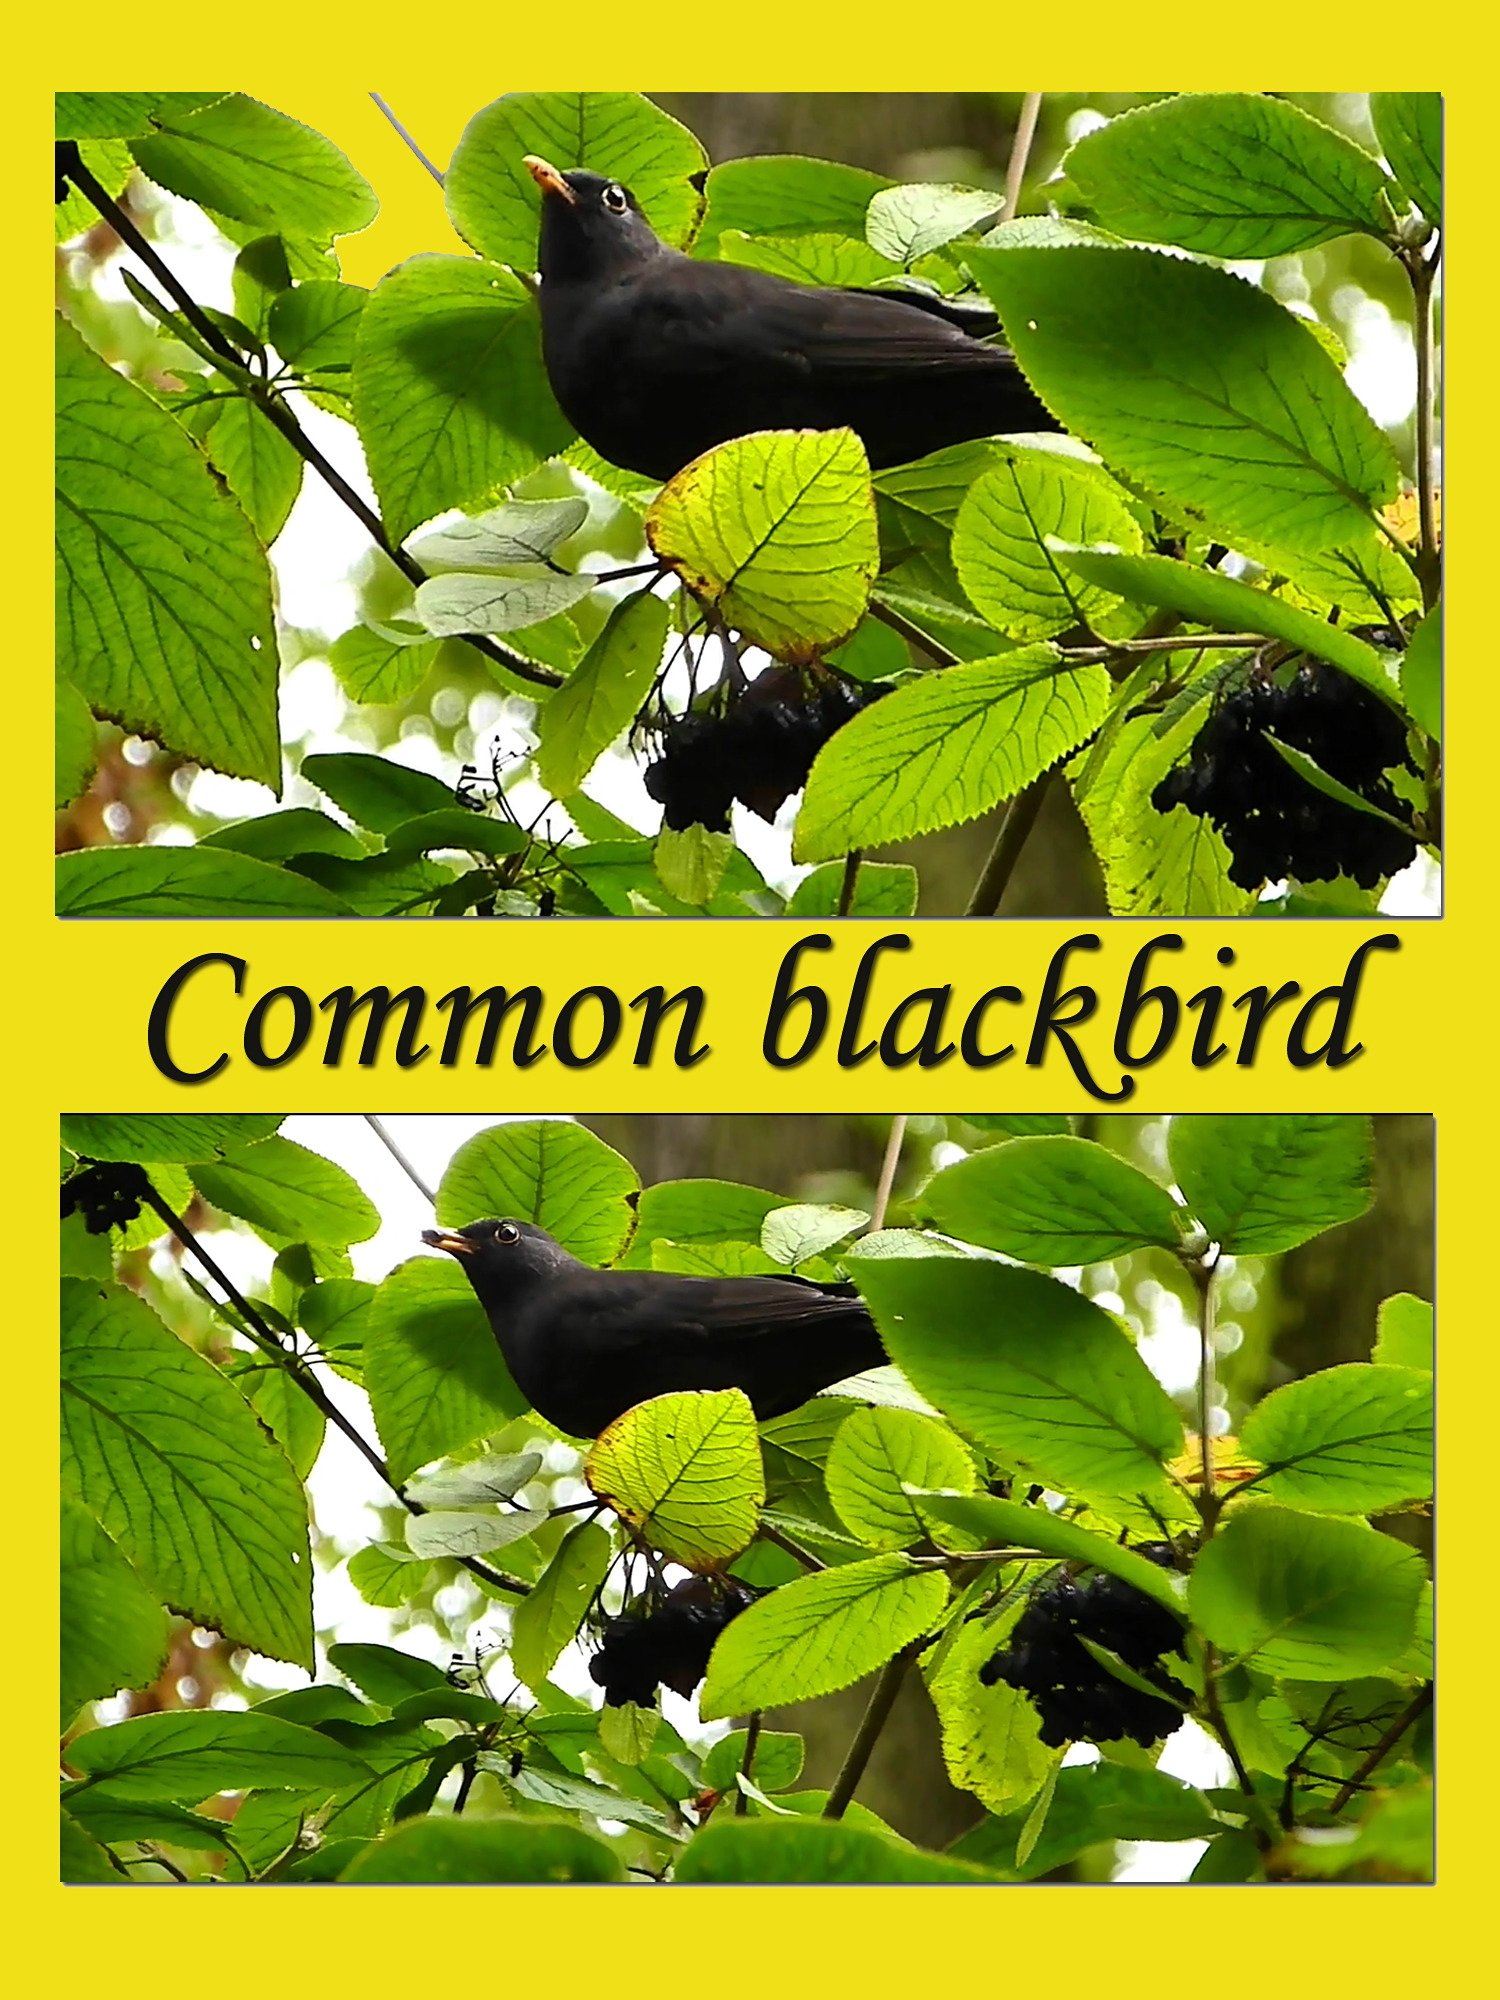 Clip: Common blackbird on Amazon Prime Instant Video UK